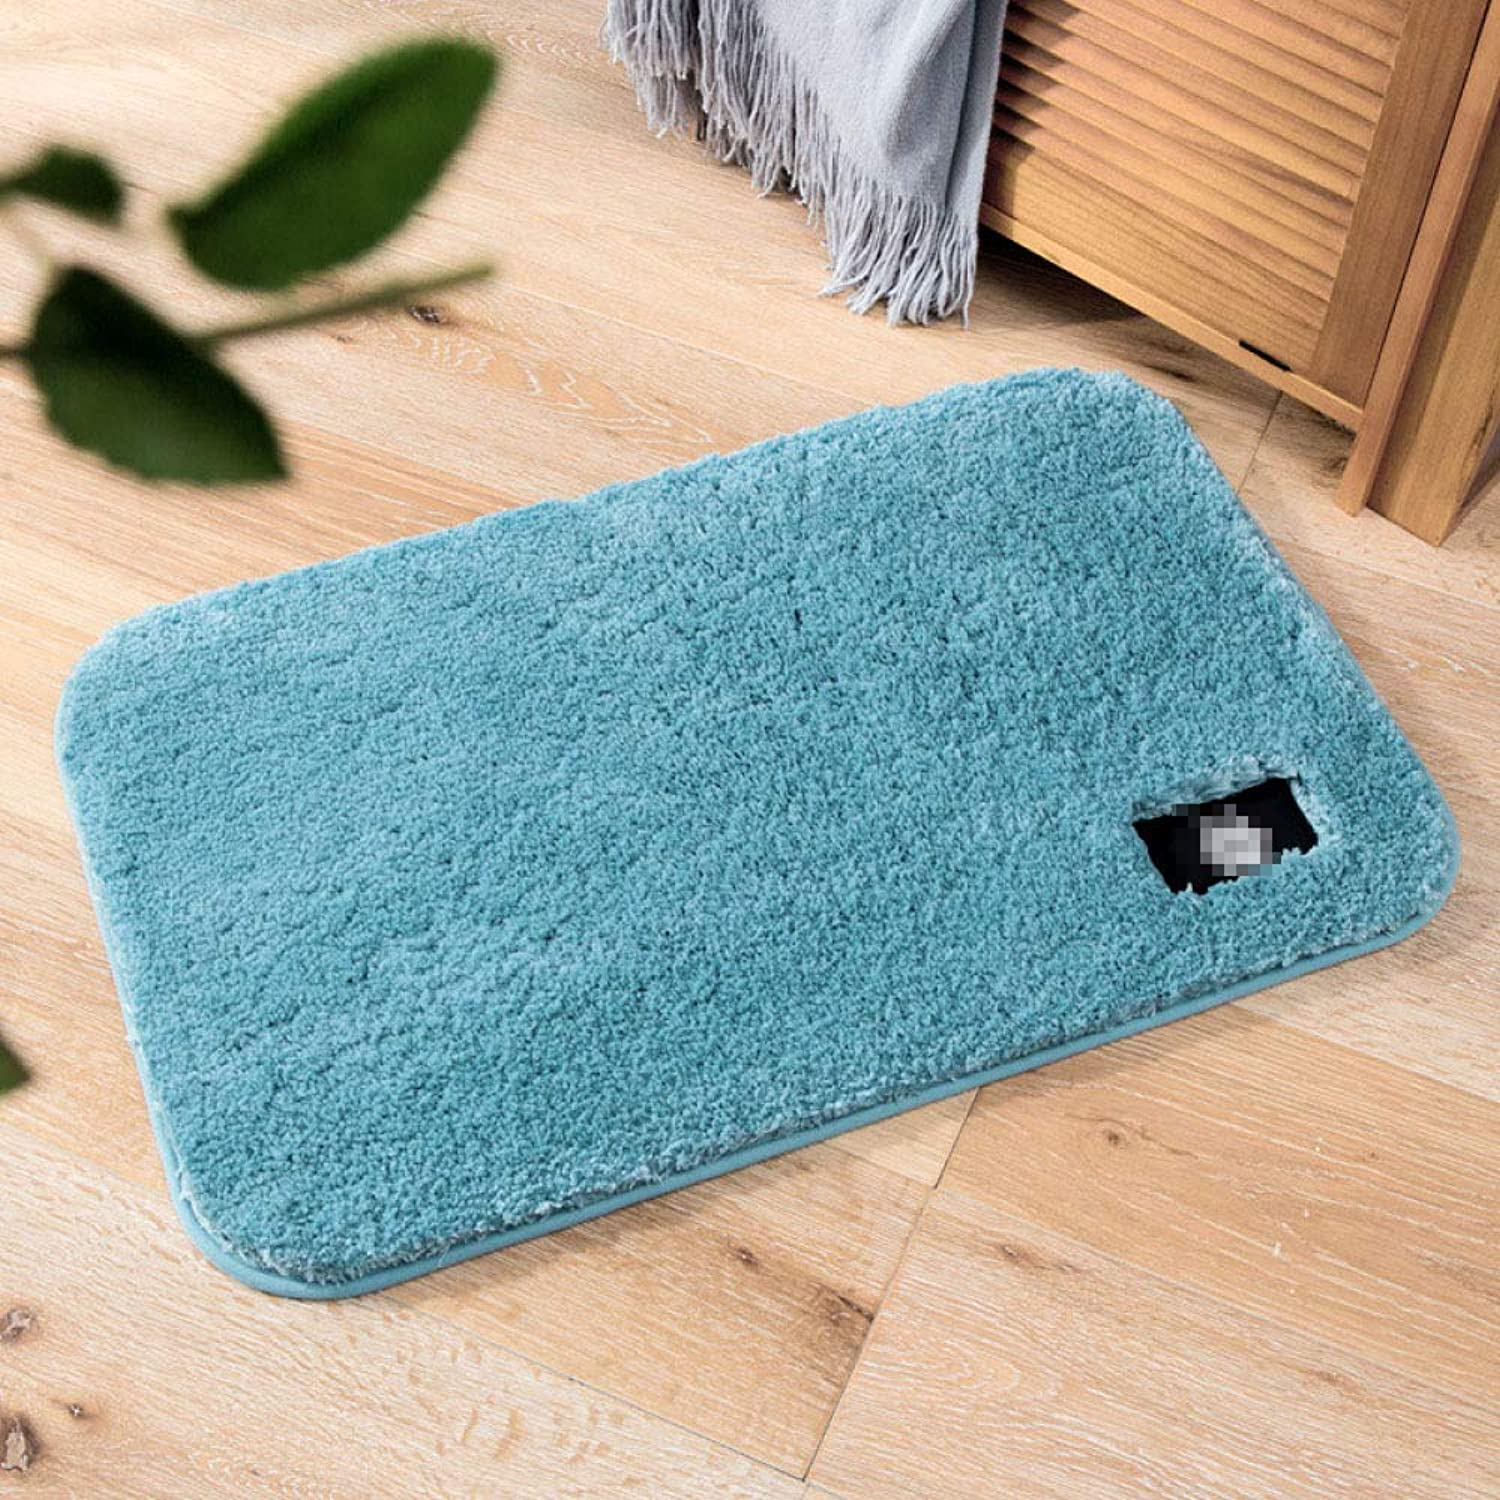 Nordic Thick Plush Floor Bedroom Door Mat Bathroom Absorbing Carpet Bathroom Door Moisture-Proof Mat,1-50  60cm